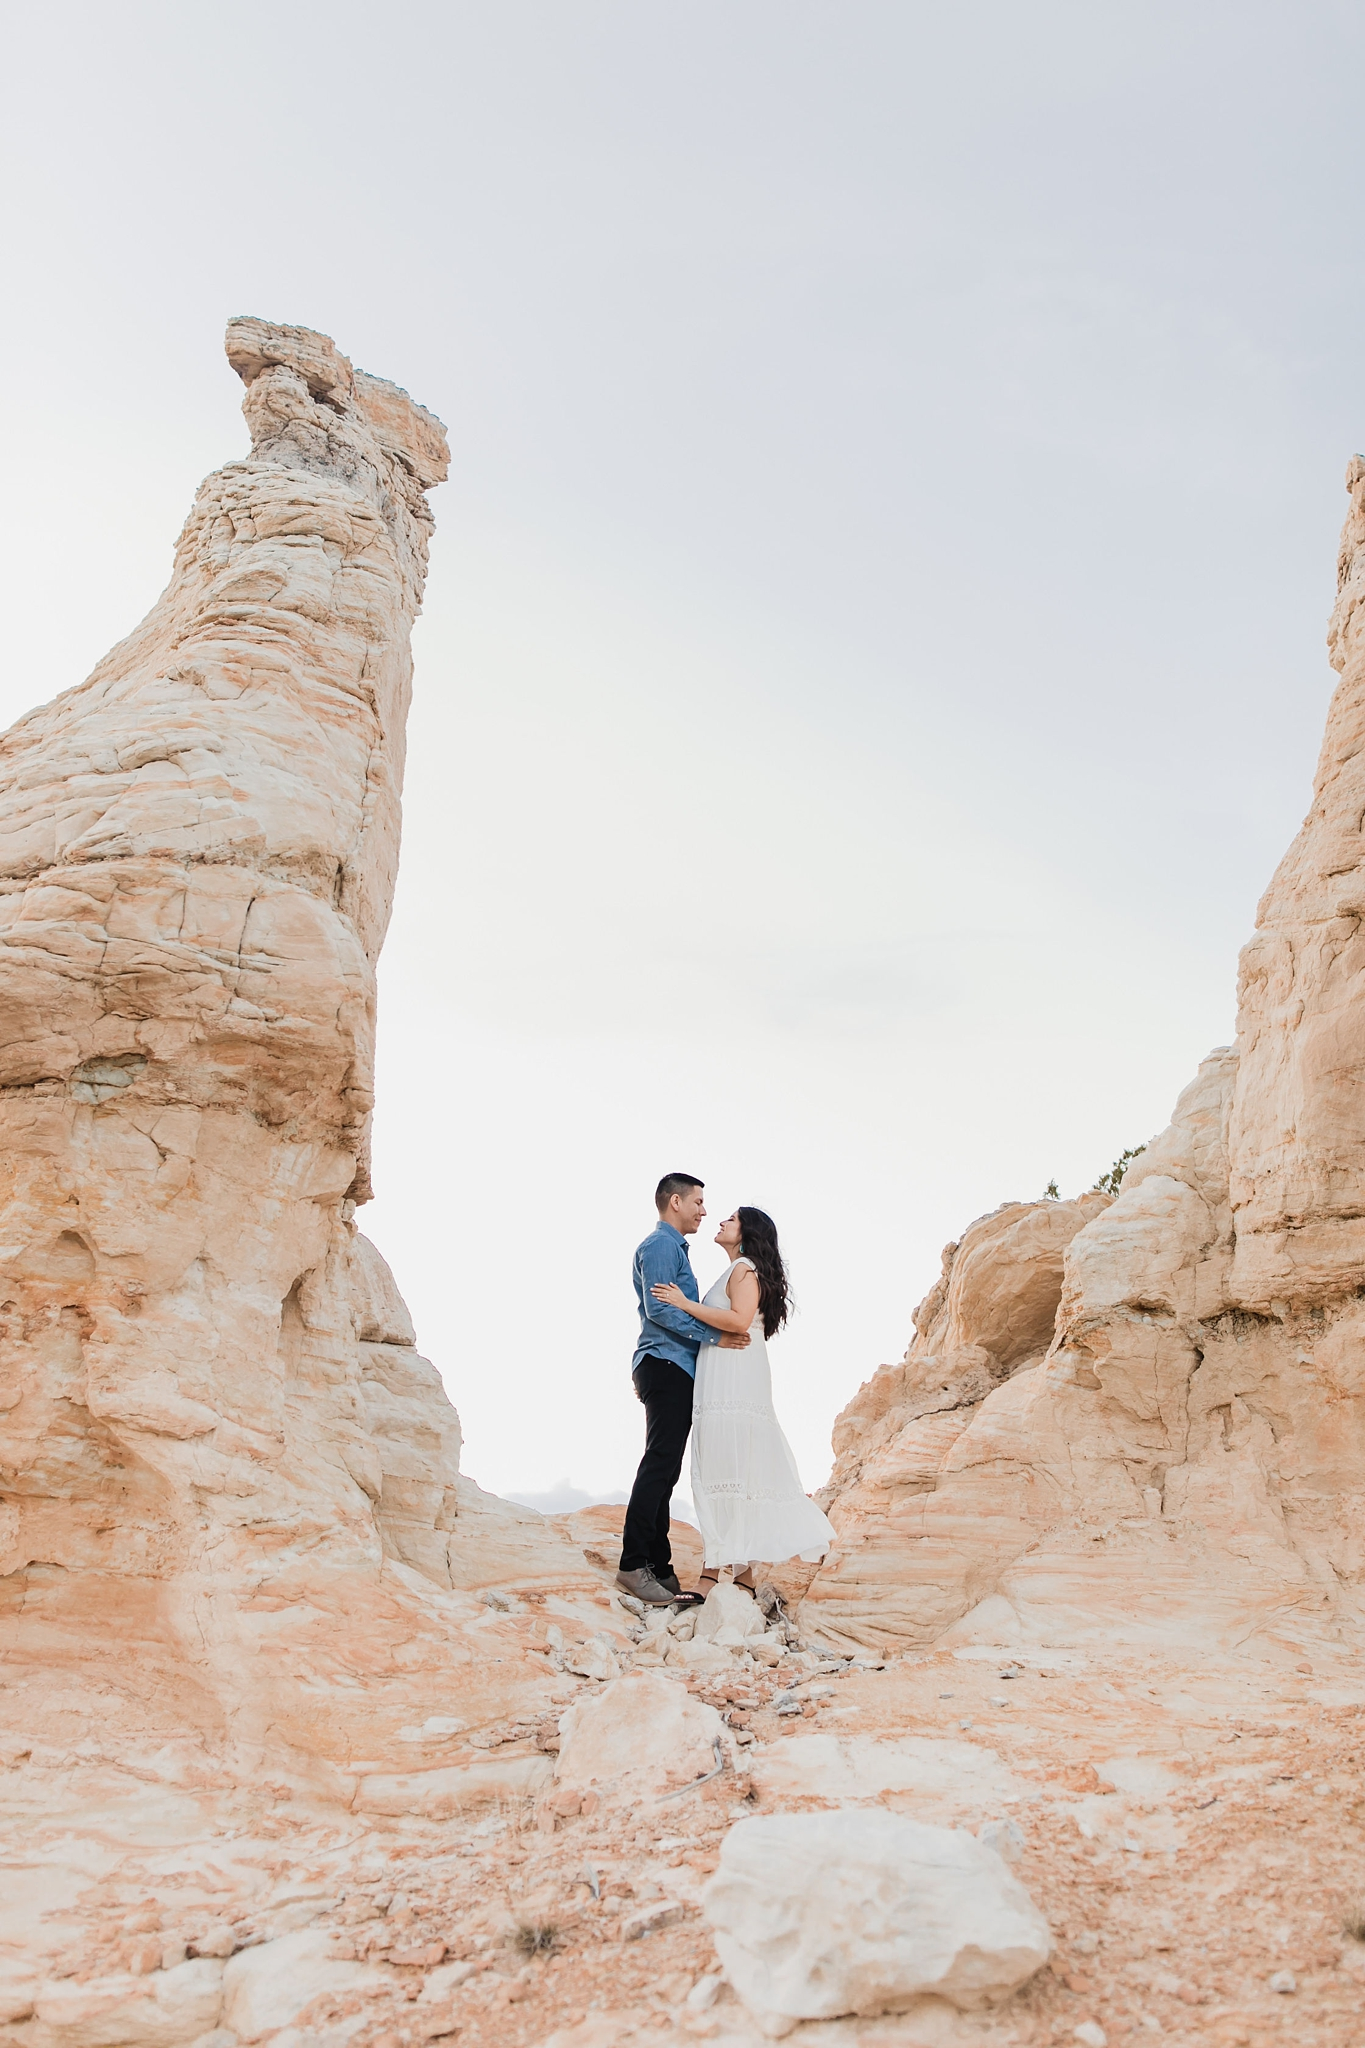 Alicia+lucia+photography+-+albuquerque+wedding+photographer+-+santa+fe+wedding+photography+-+new+mexico+wedding+photographer+-+new+mexico+wedding+-+new+mexico+engagement+-+white+mesa+engagement+-+desert+engagement_0005.jpg